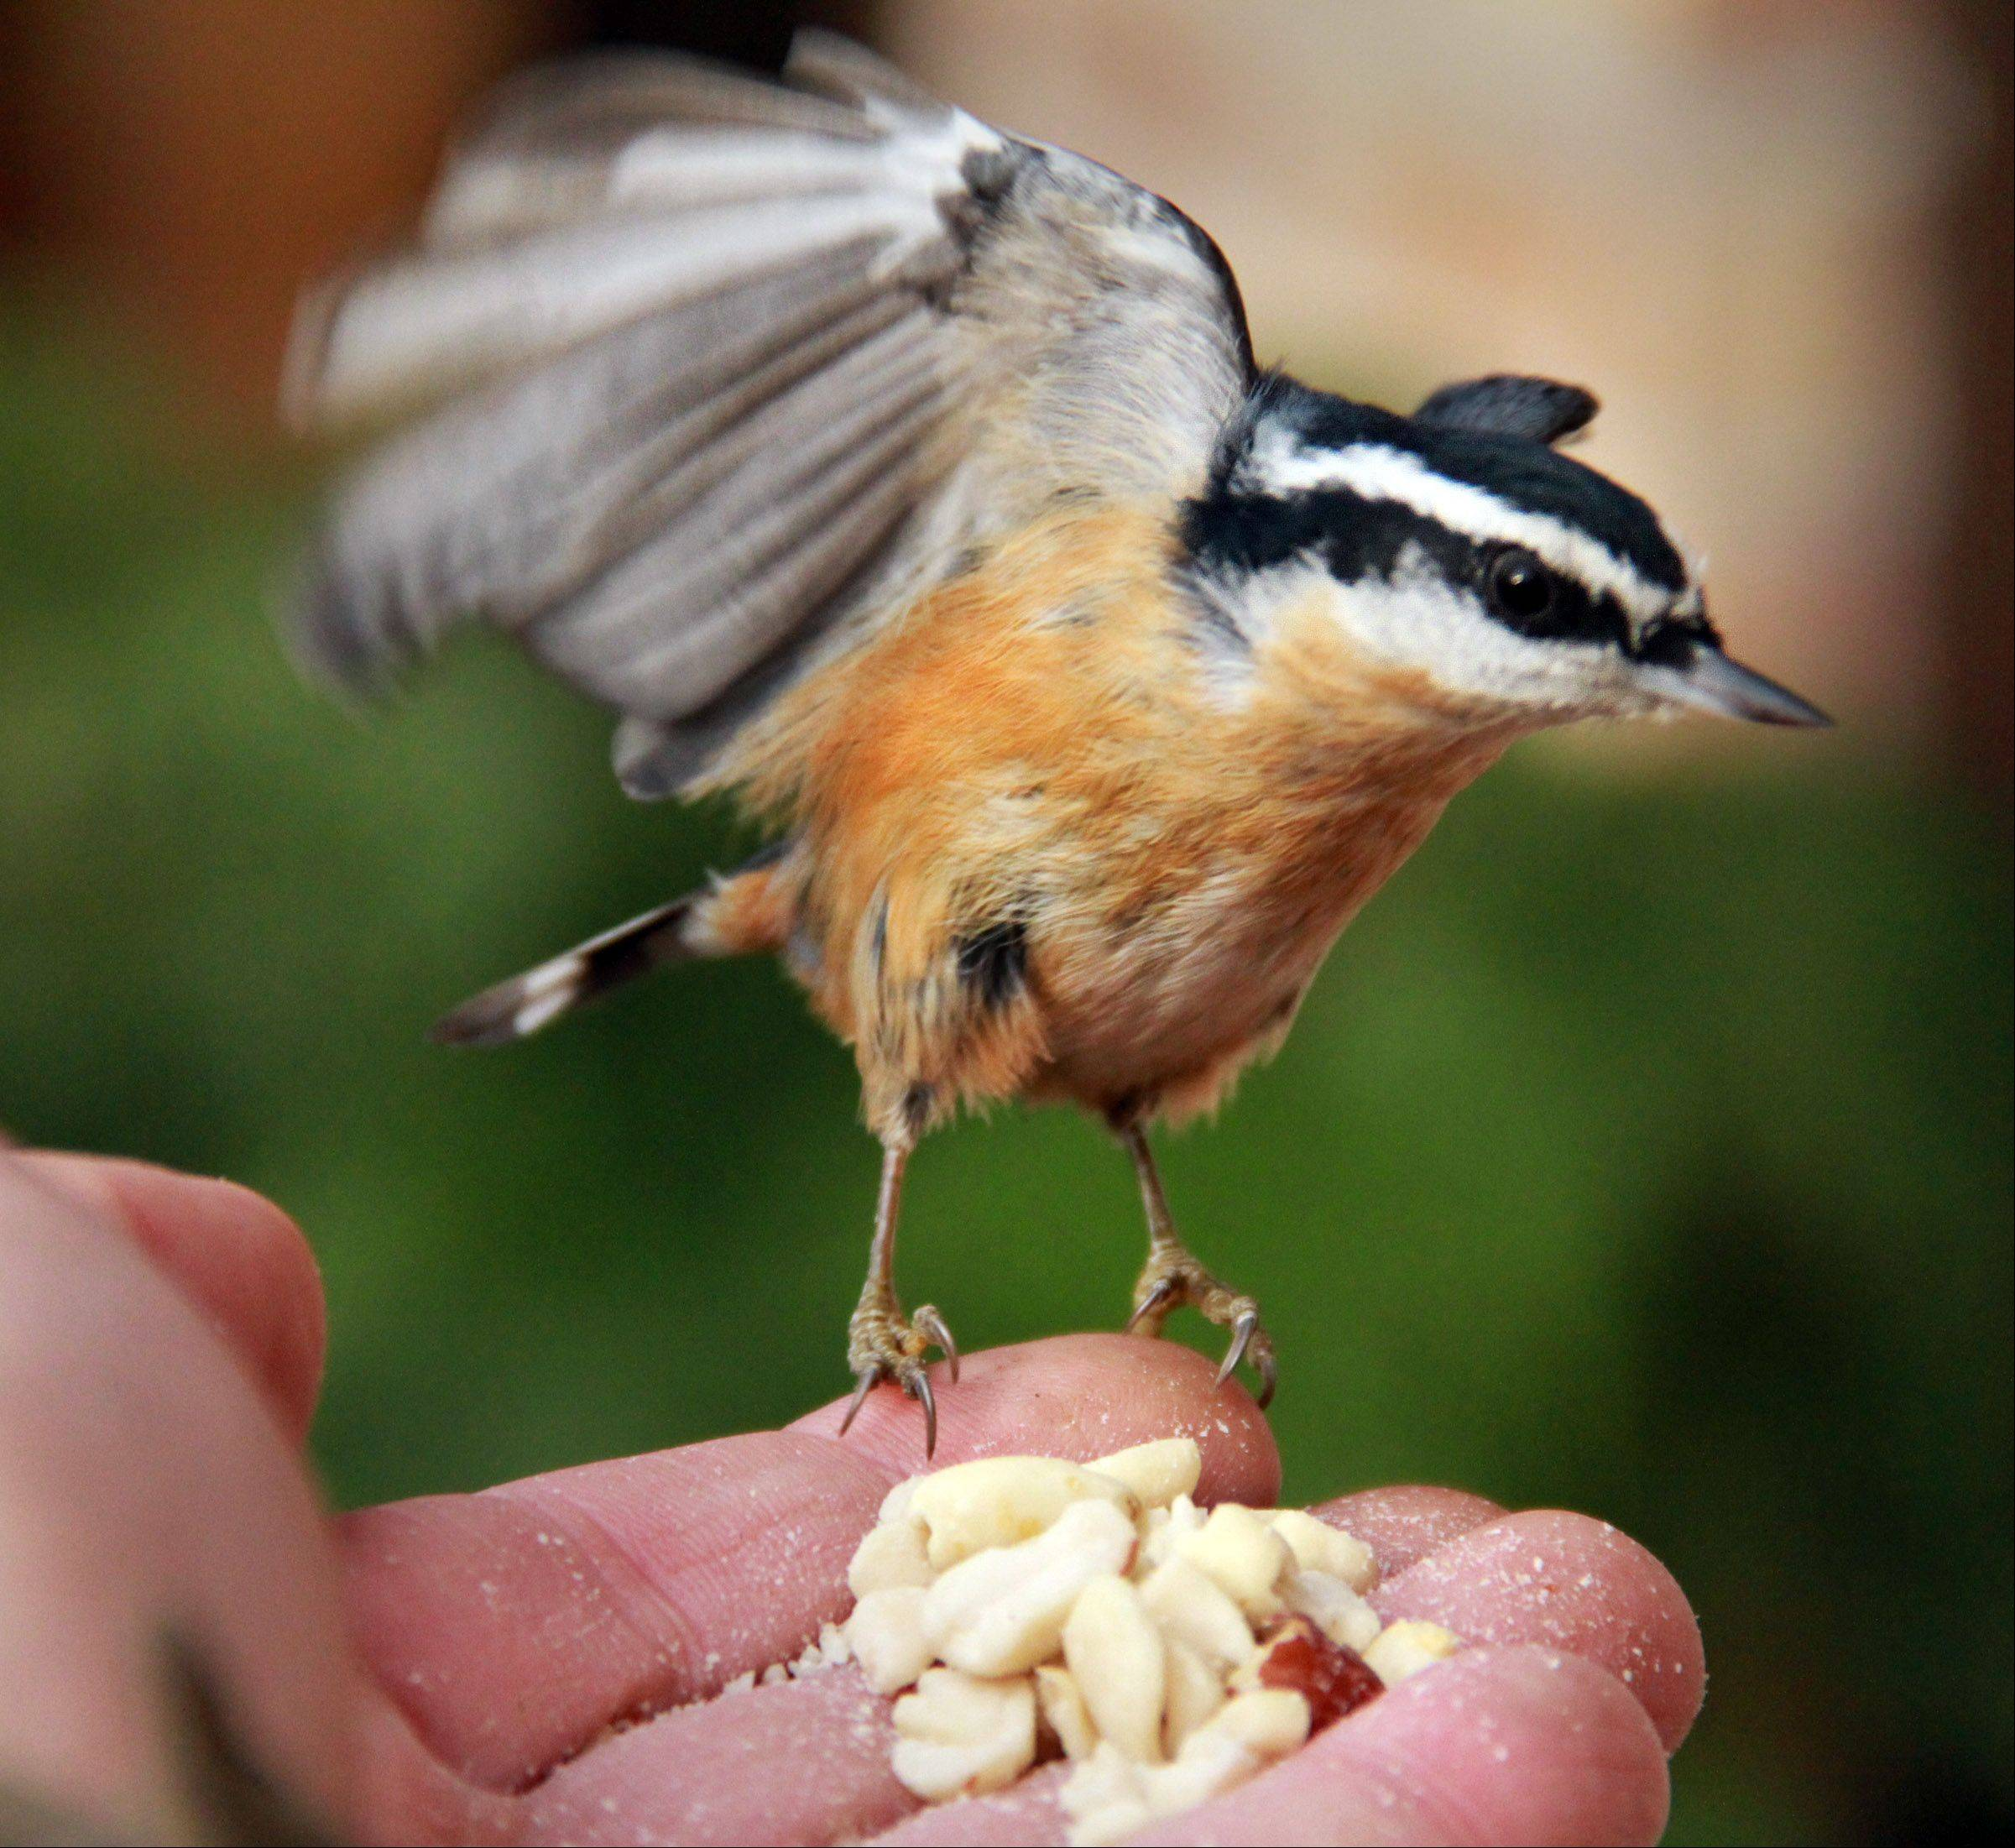 A male and female red-breasted nuthatch landed on Daily Herald photographer George LeClaire's hand more than 50 times in a 3-hour period to grab peanuts as he took photographs and shot a video of the half-ounce bird in Glenview on Nov. 15.